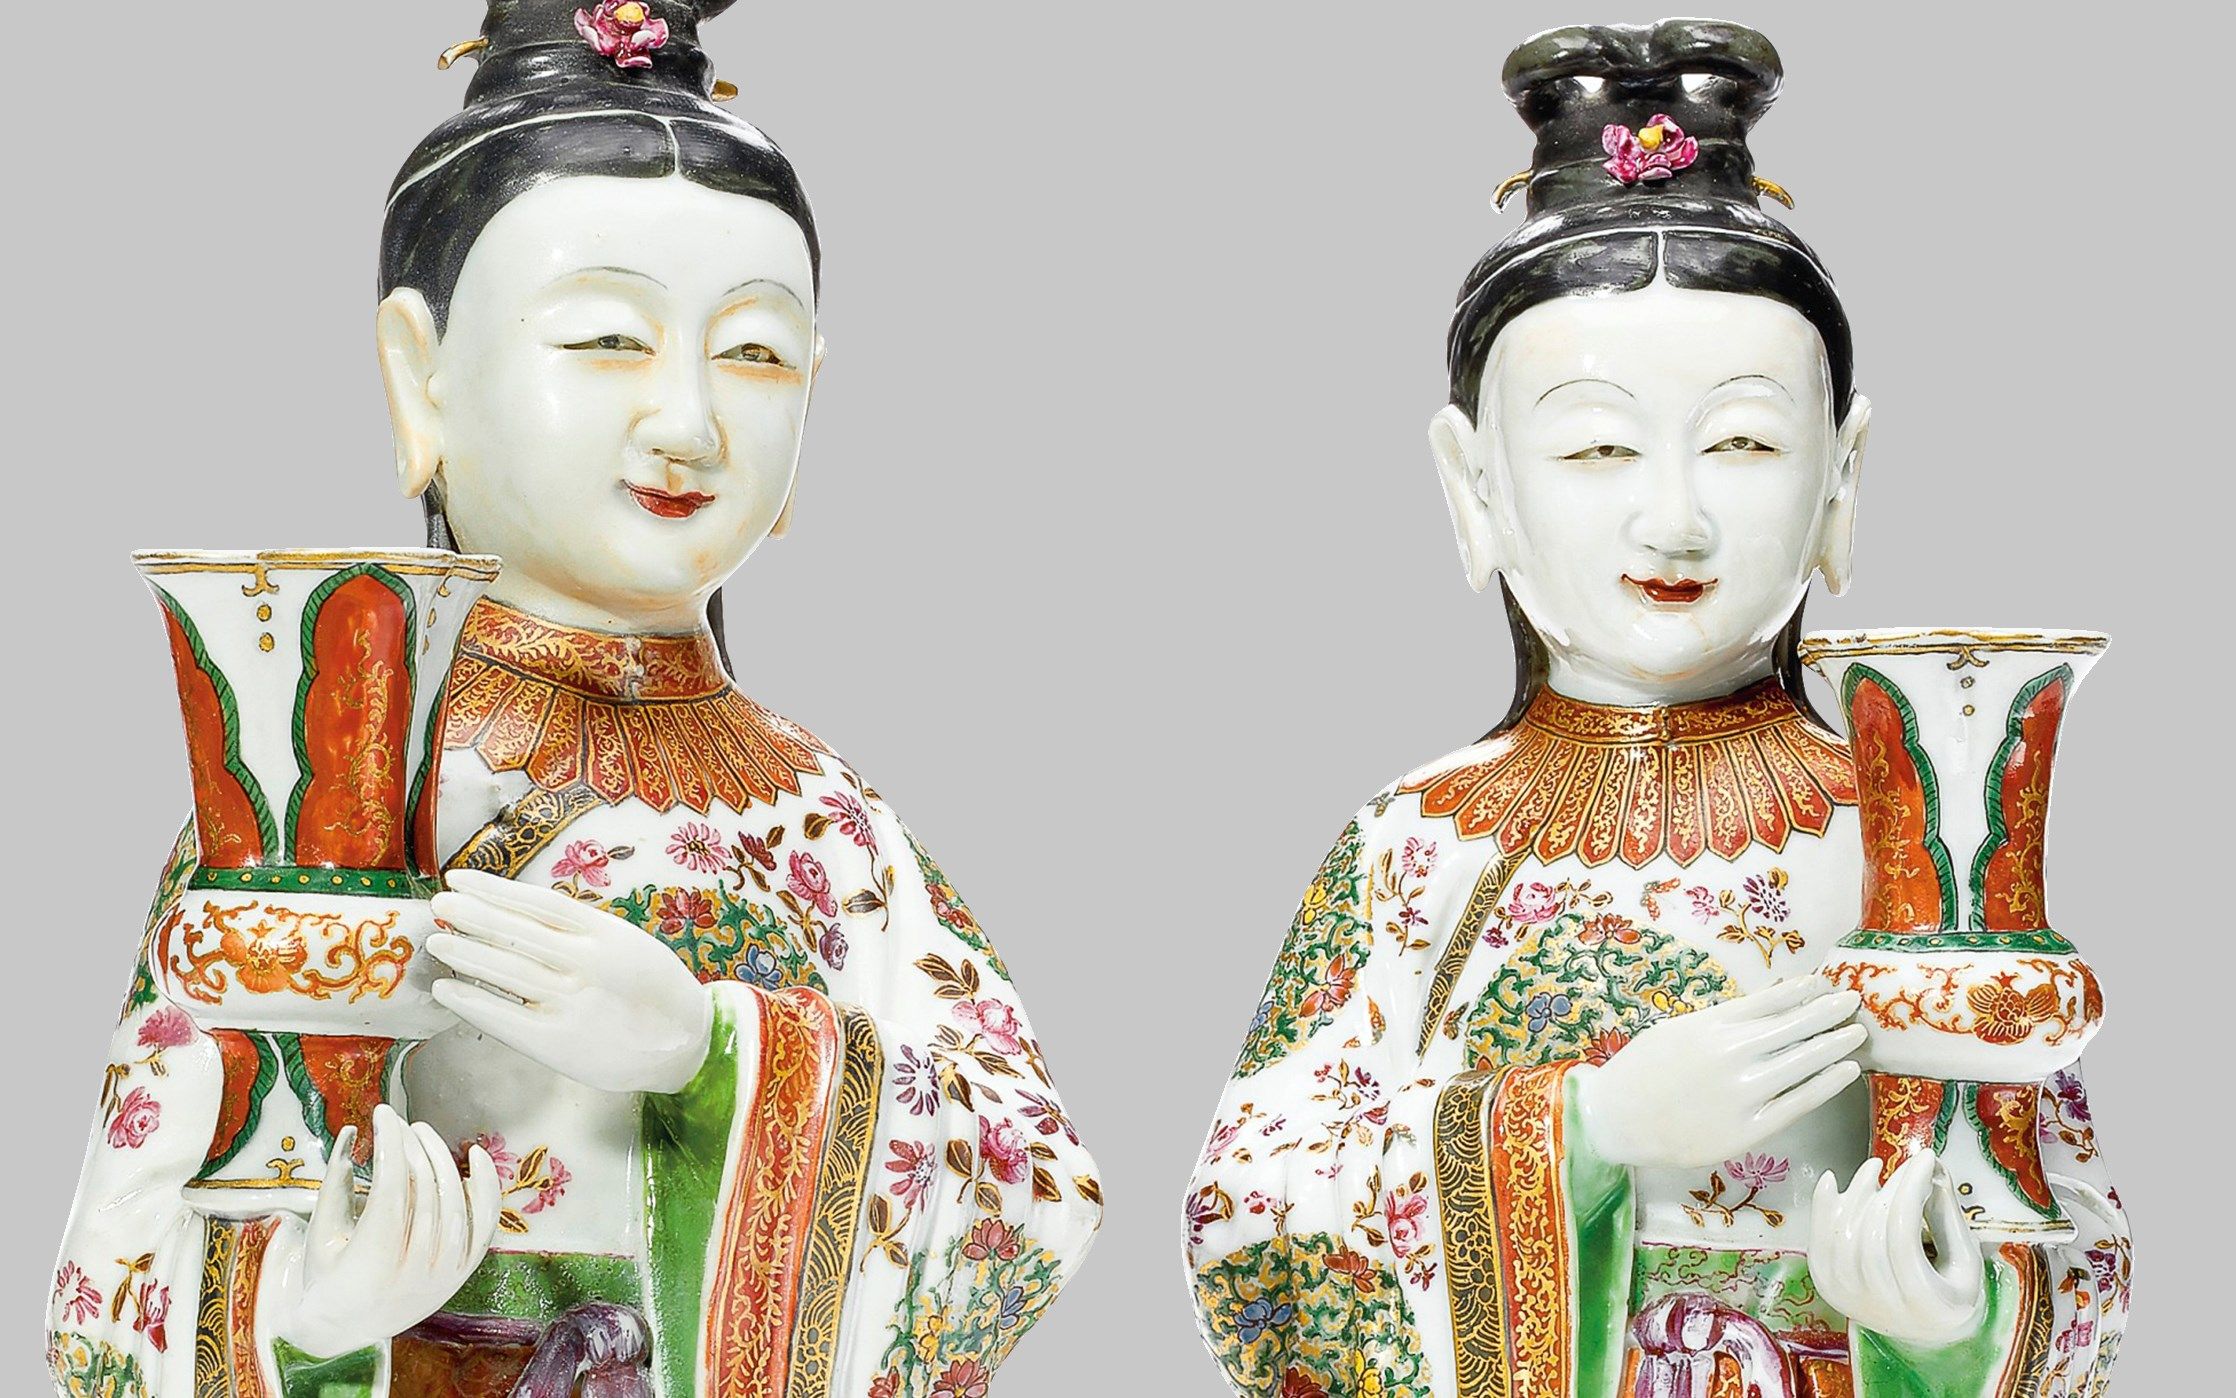 Chinese Export Art Featuring t auction at Christies